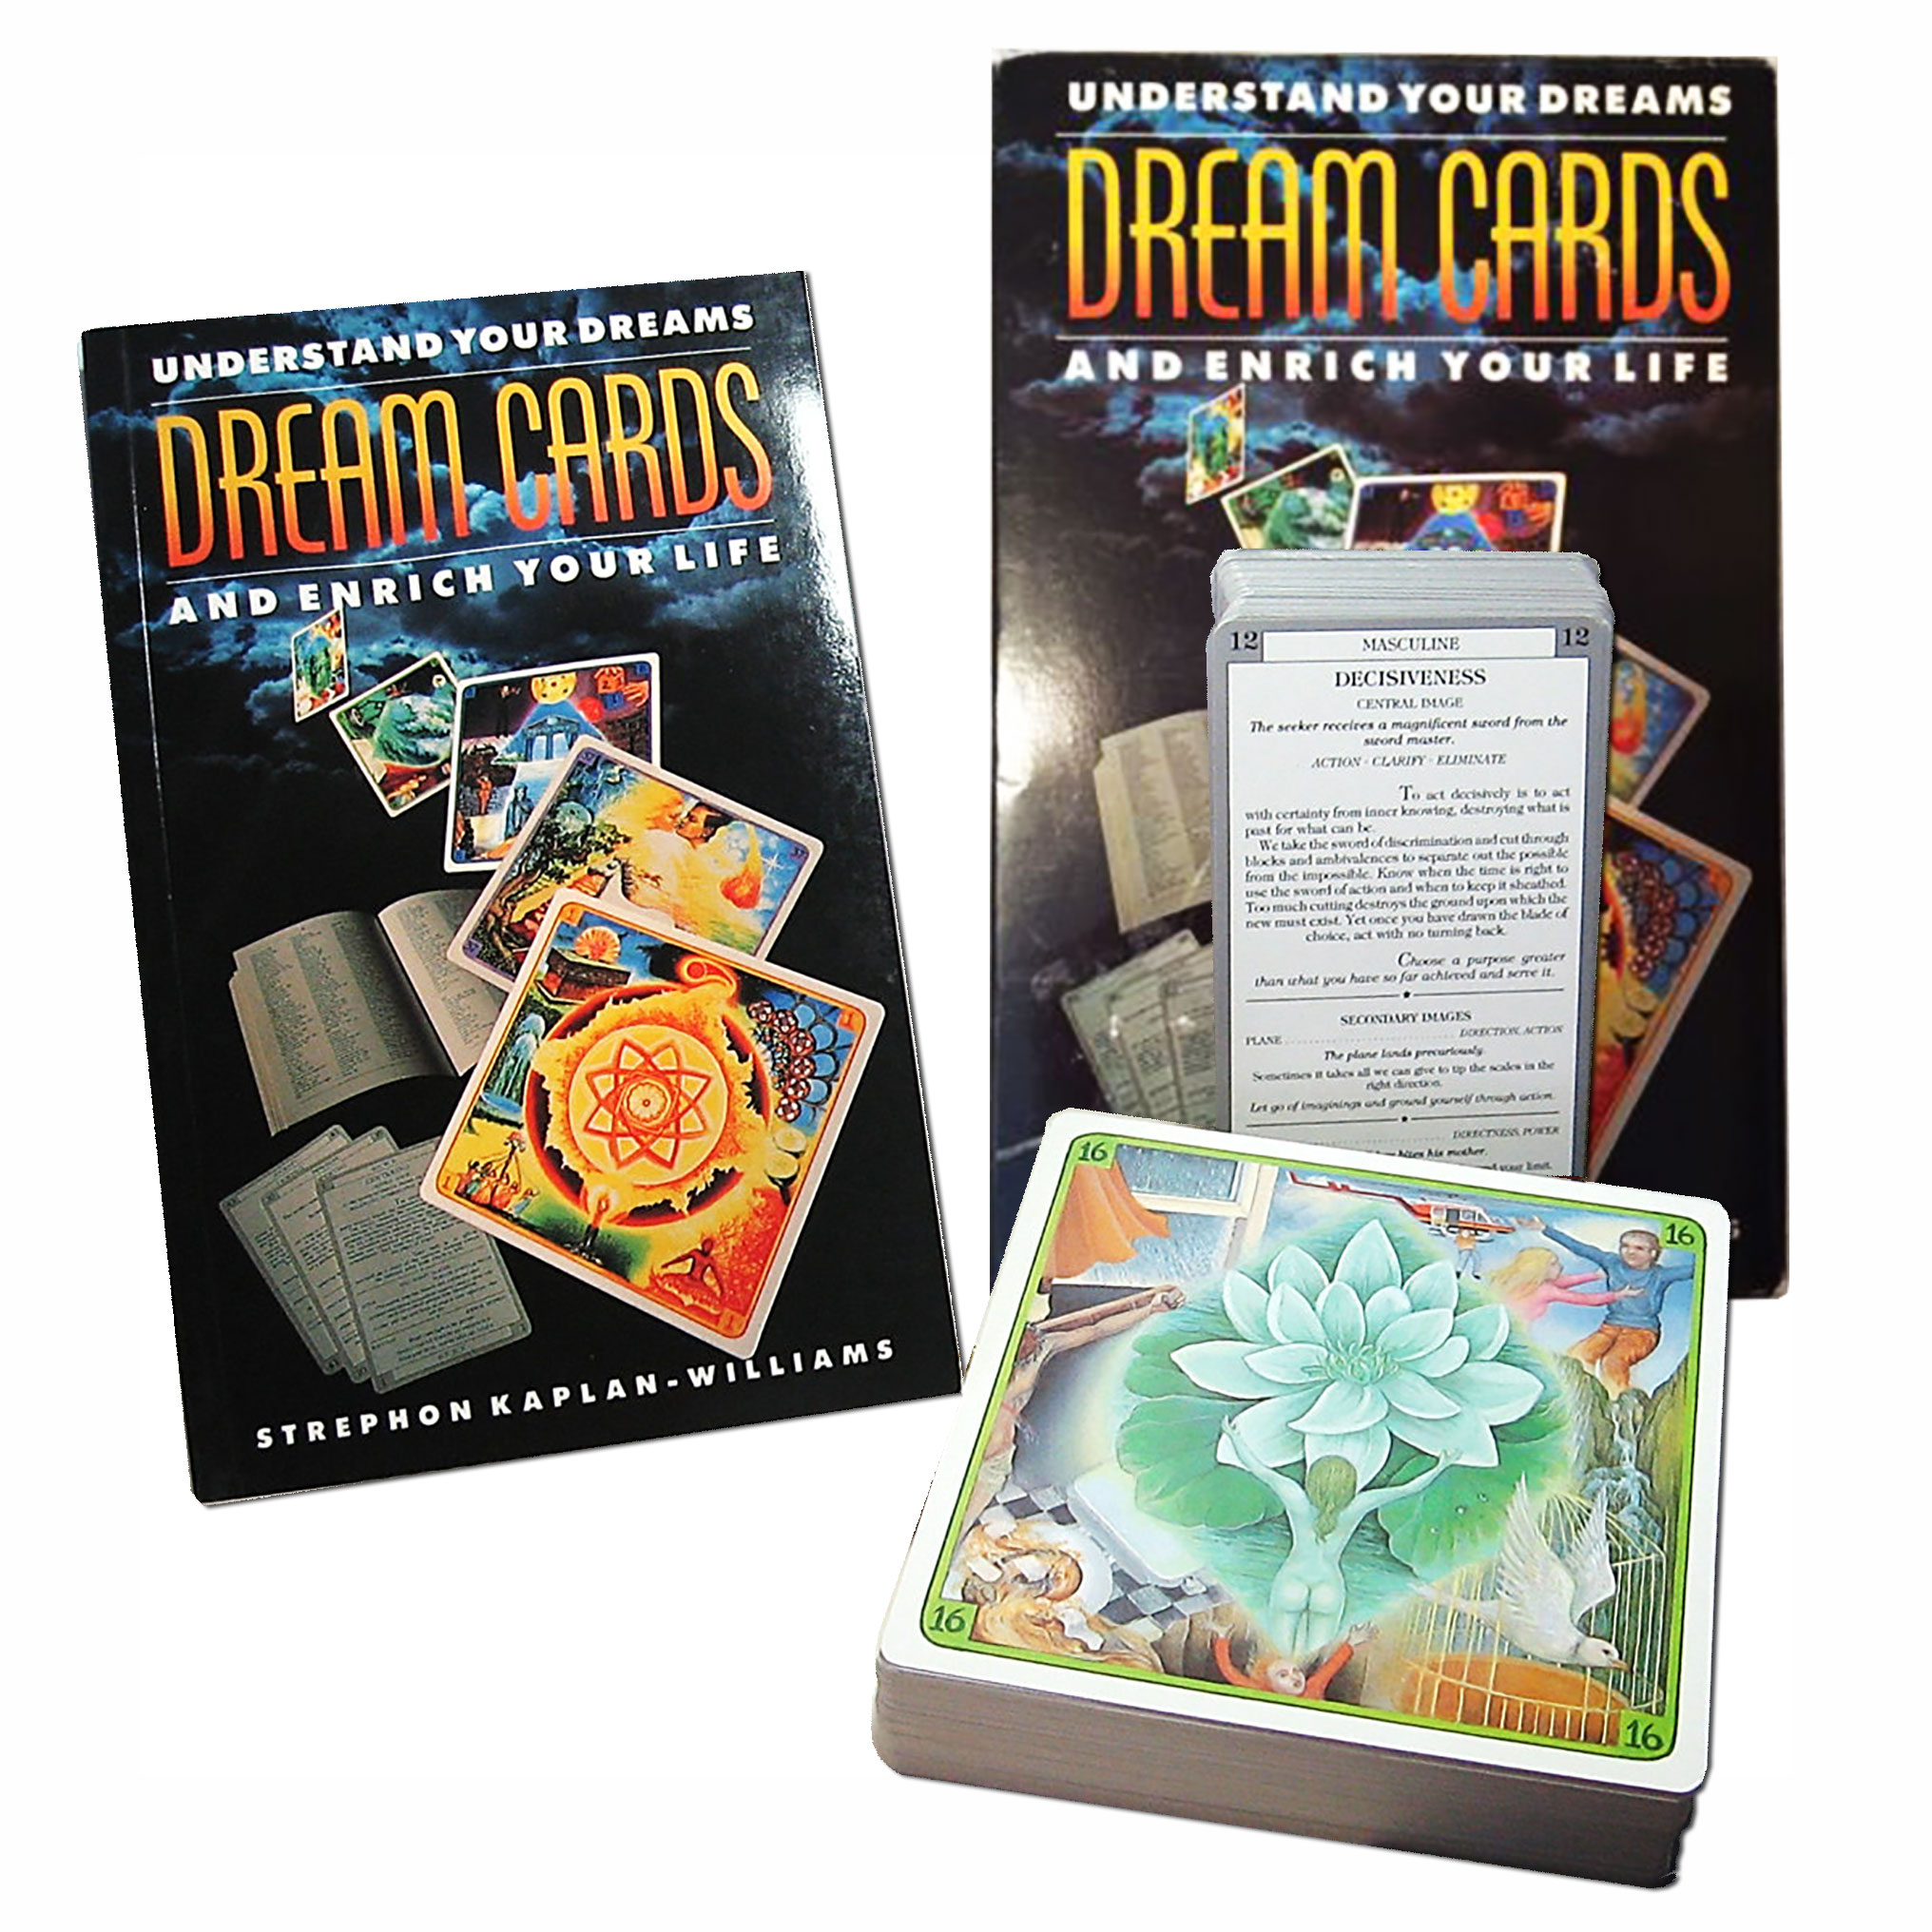 Image for Dream Cards: Understand Your Dreams and Enrich Your Life